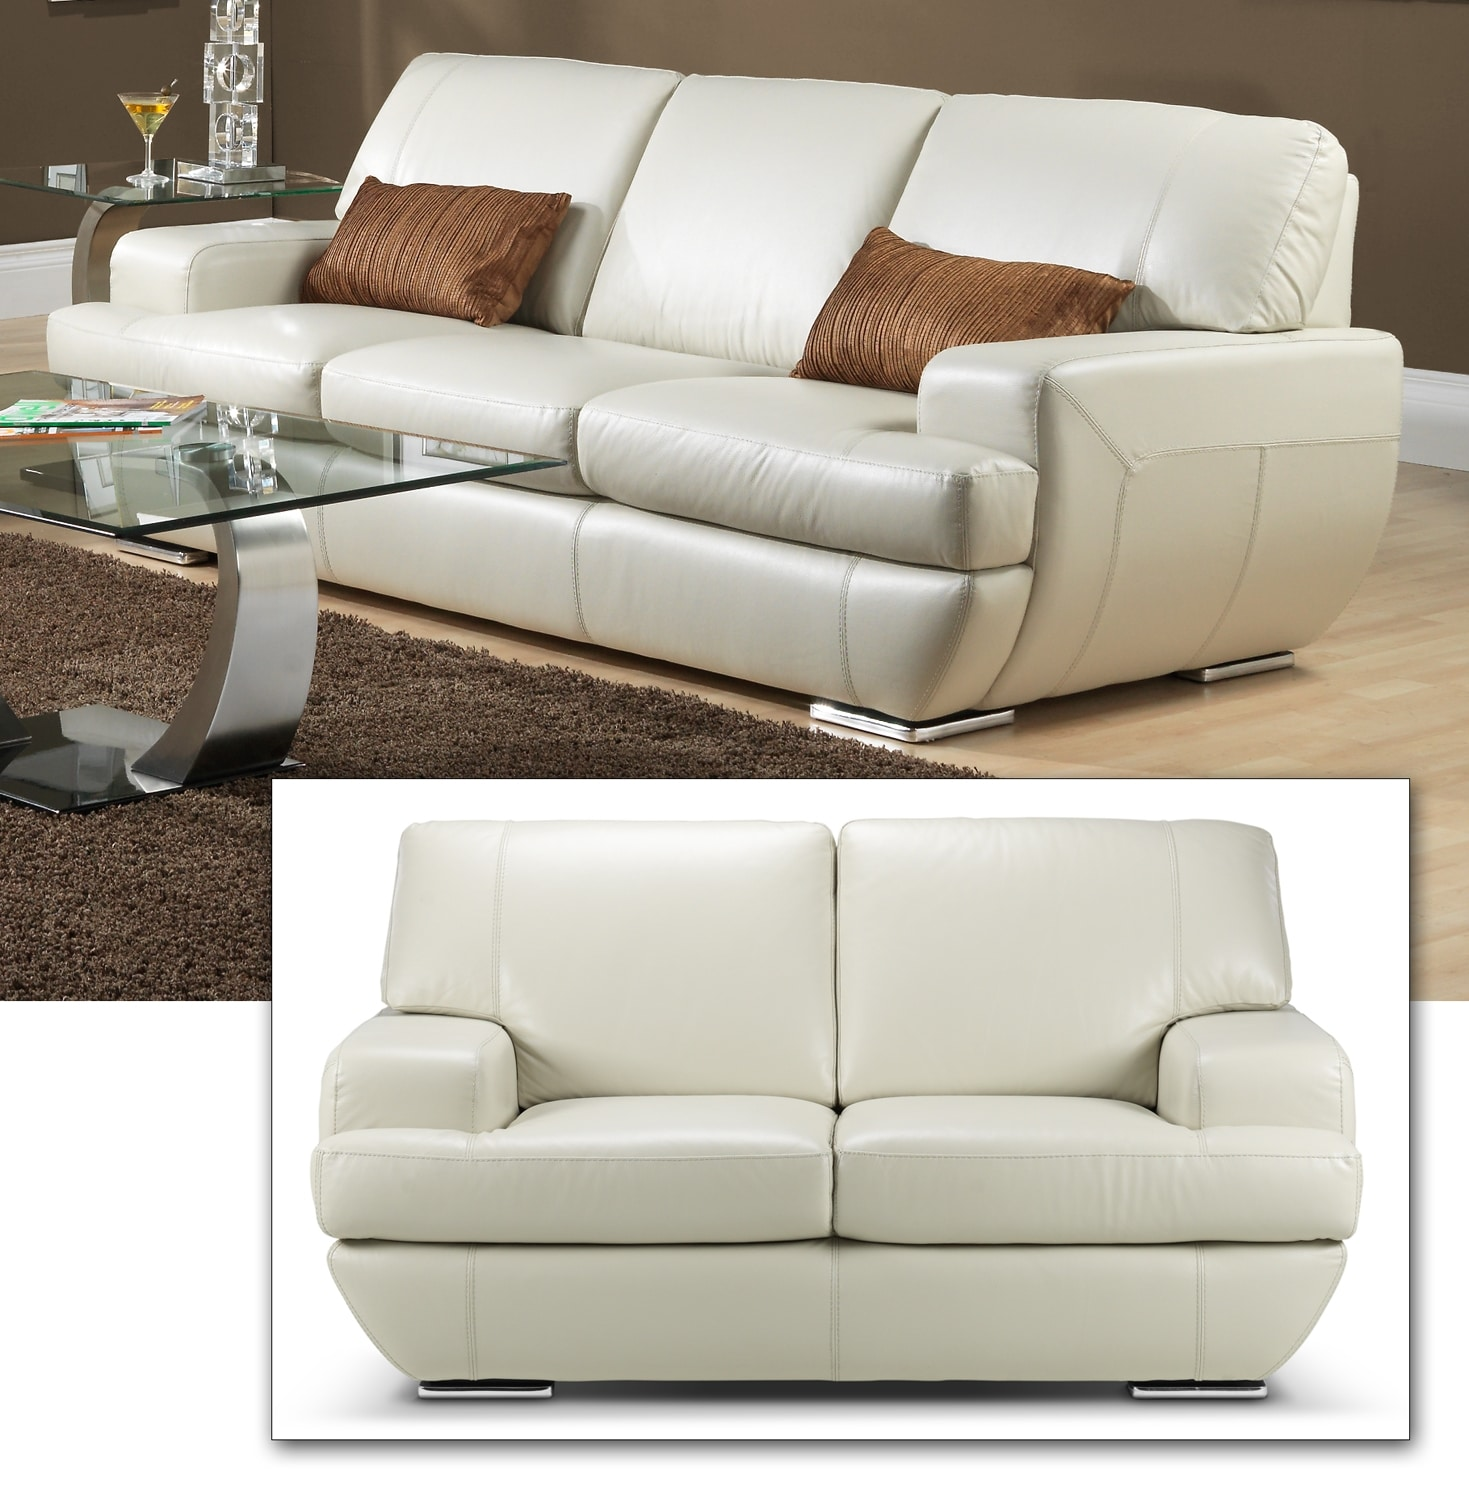 Leon S Furniture Sectional Sofas: Miranda Sofa - Off-White